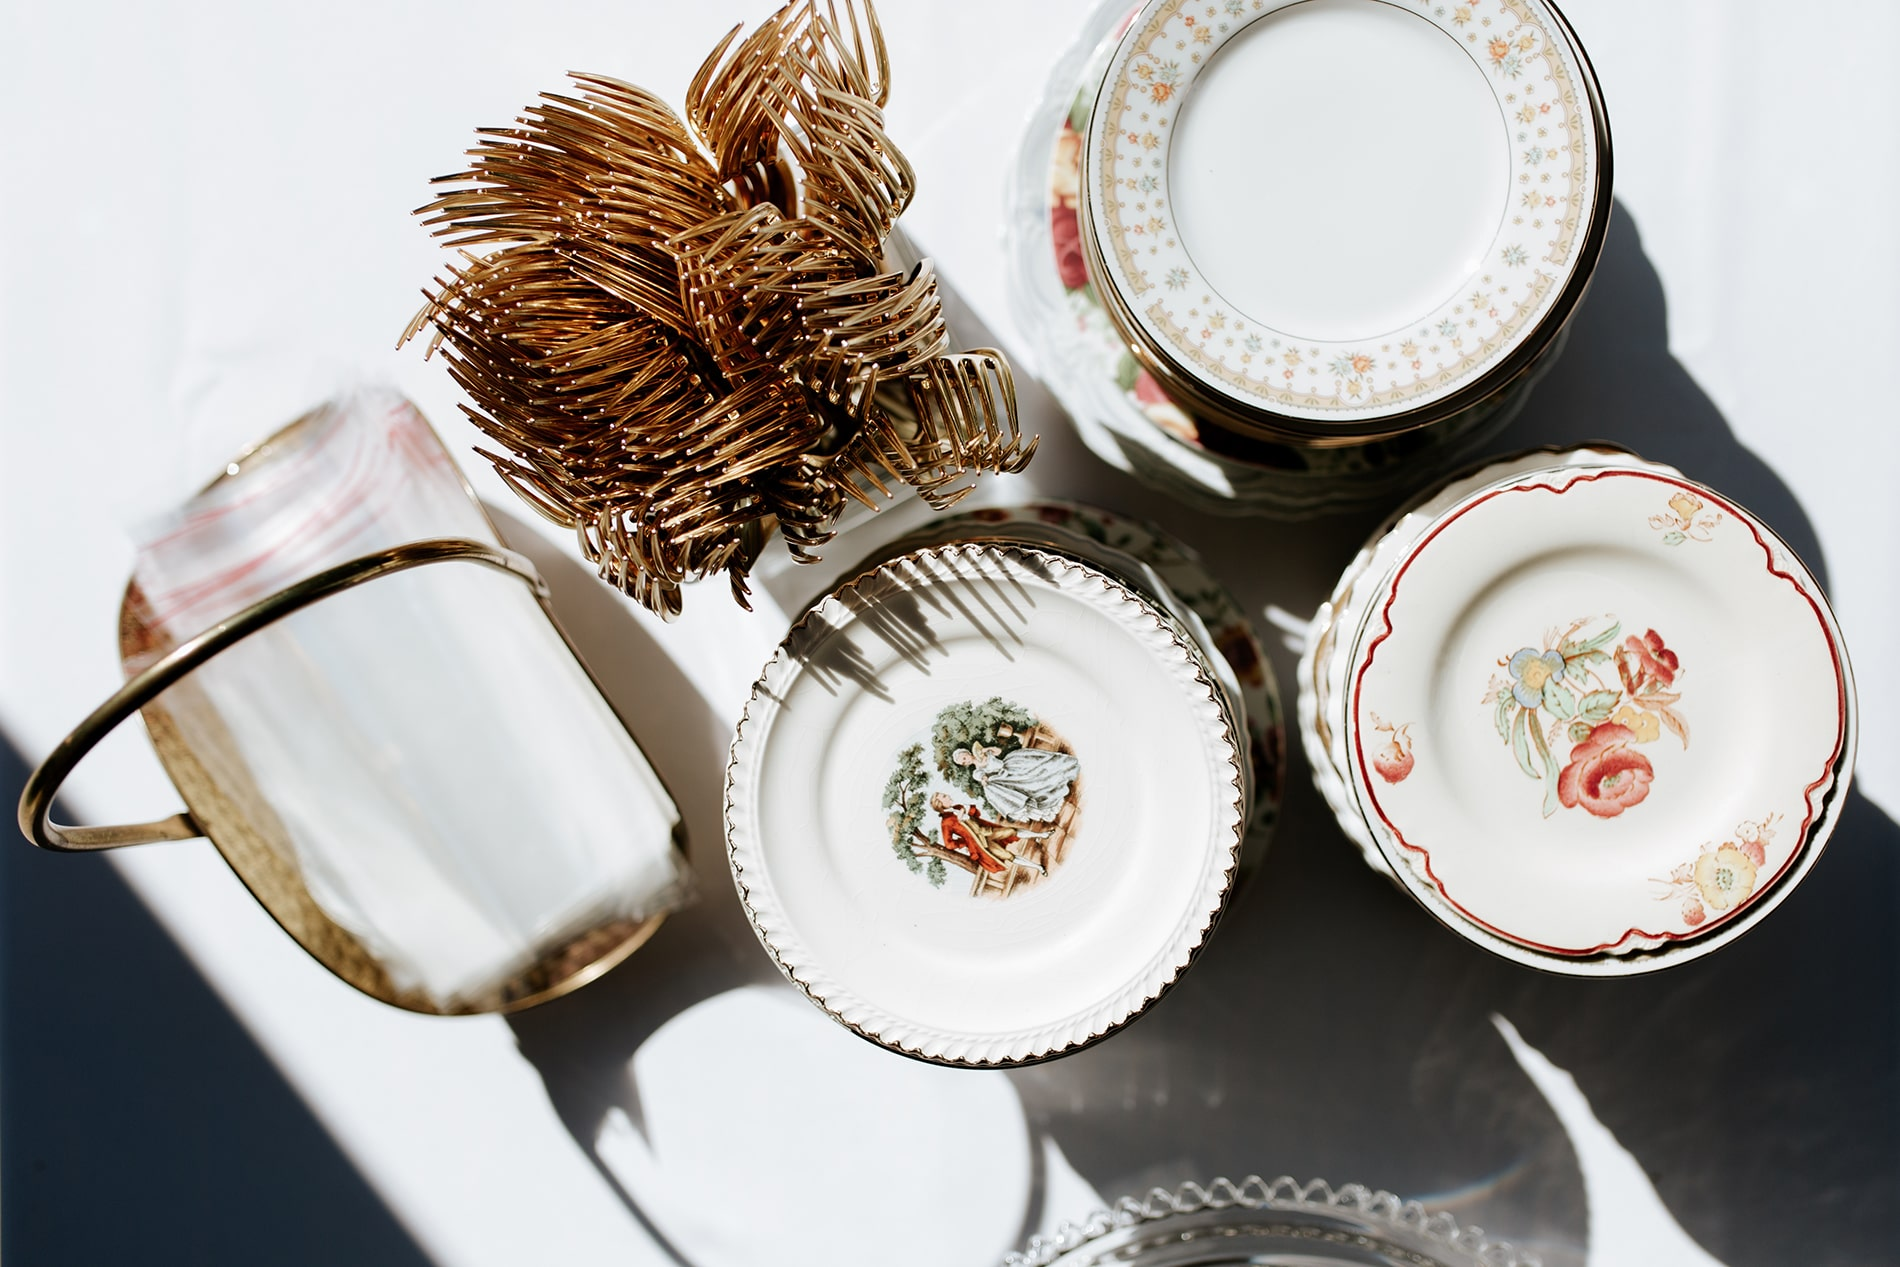 lowcountry-kitchen-catering-beaufort-sc-mary-grace-and-judd-kennedy-wedding-ceremony-bingo-plates-min.jpg